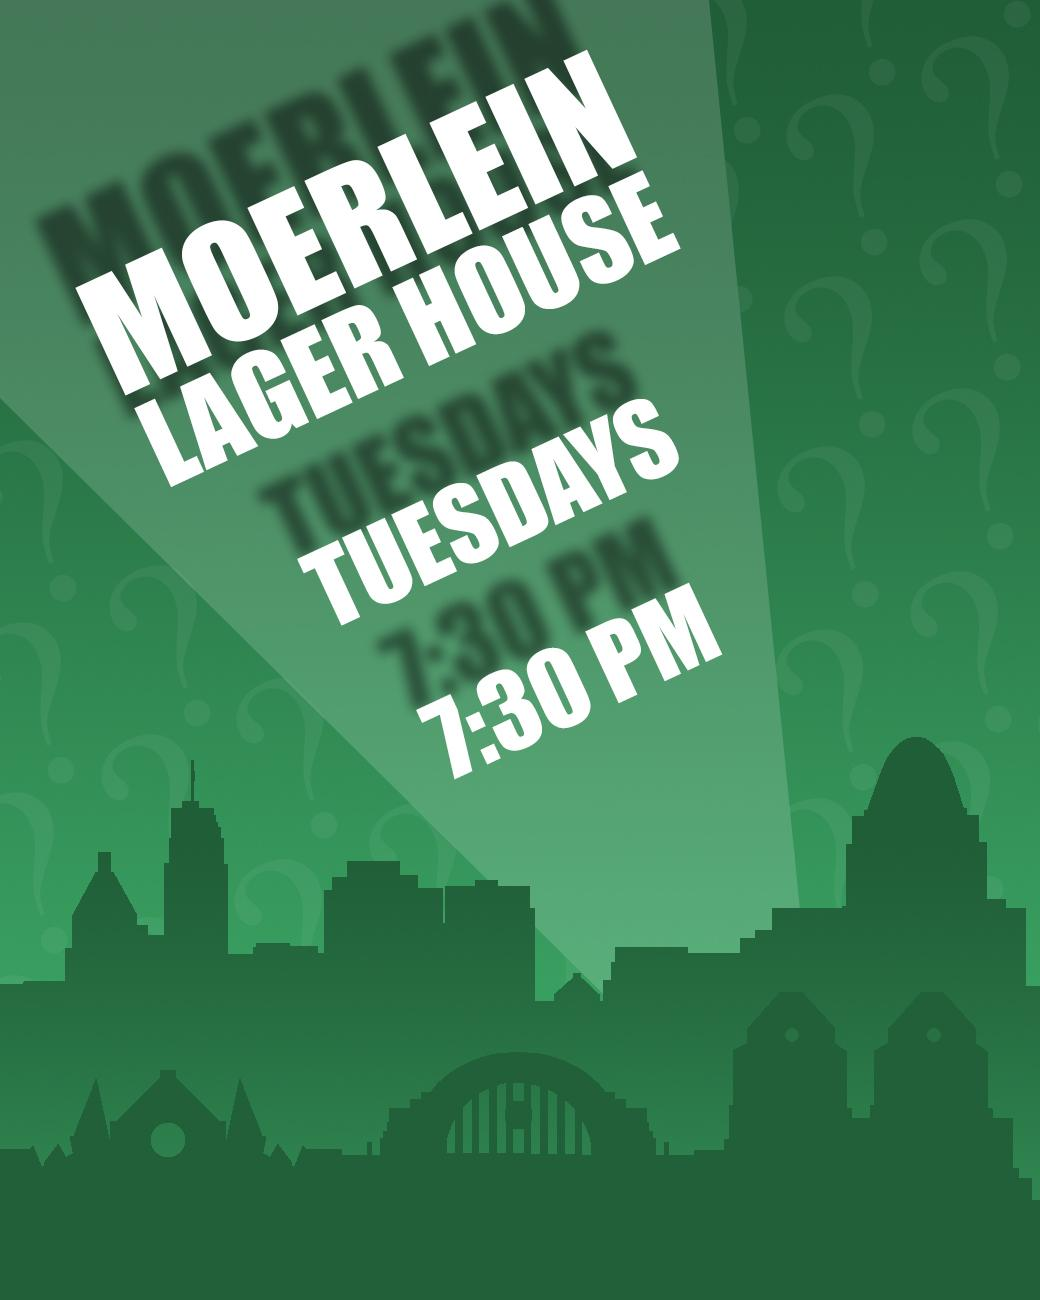 Moerlein Lager House has trivia every Tuesday starting at 7:30 PM. ADDRESS: 115 Joe Nuxhall Way (45202) / Image: Phil Armstrong, Cincinnati Refined // Published: 8.30.17